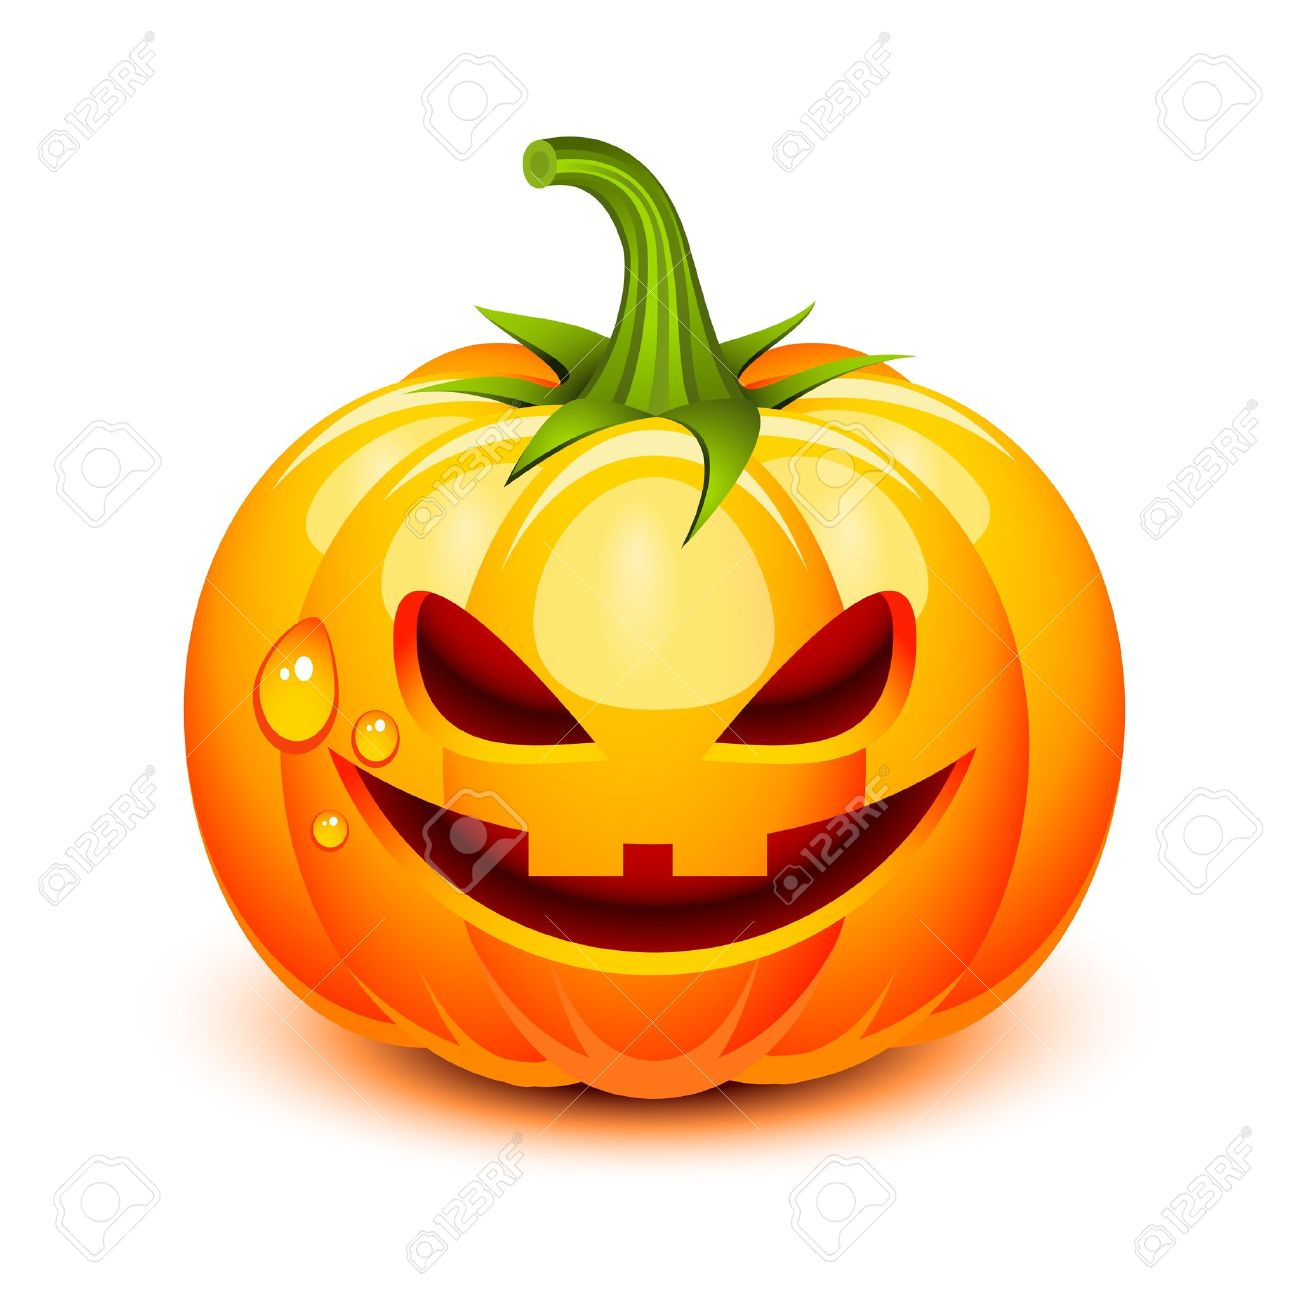 Halloween pumpkin face in a glossy style Stock Vector - 10588035